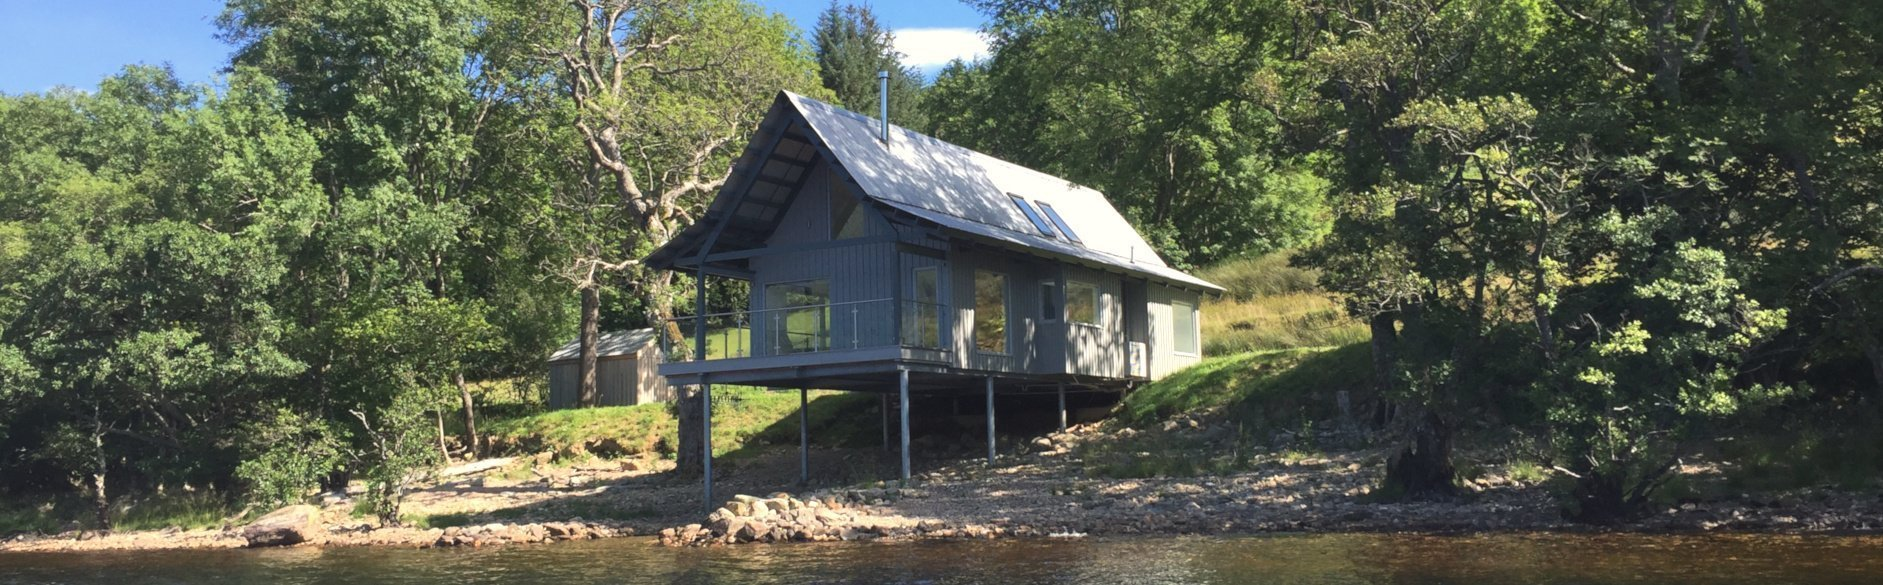 Boathouse Lodge on Shore of Loch Tay